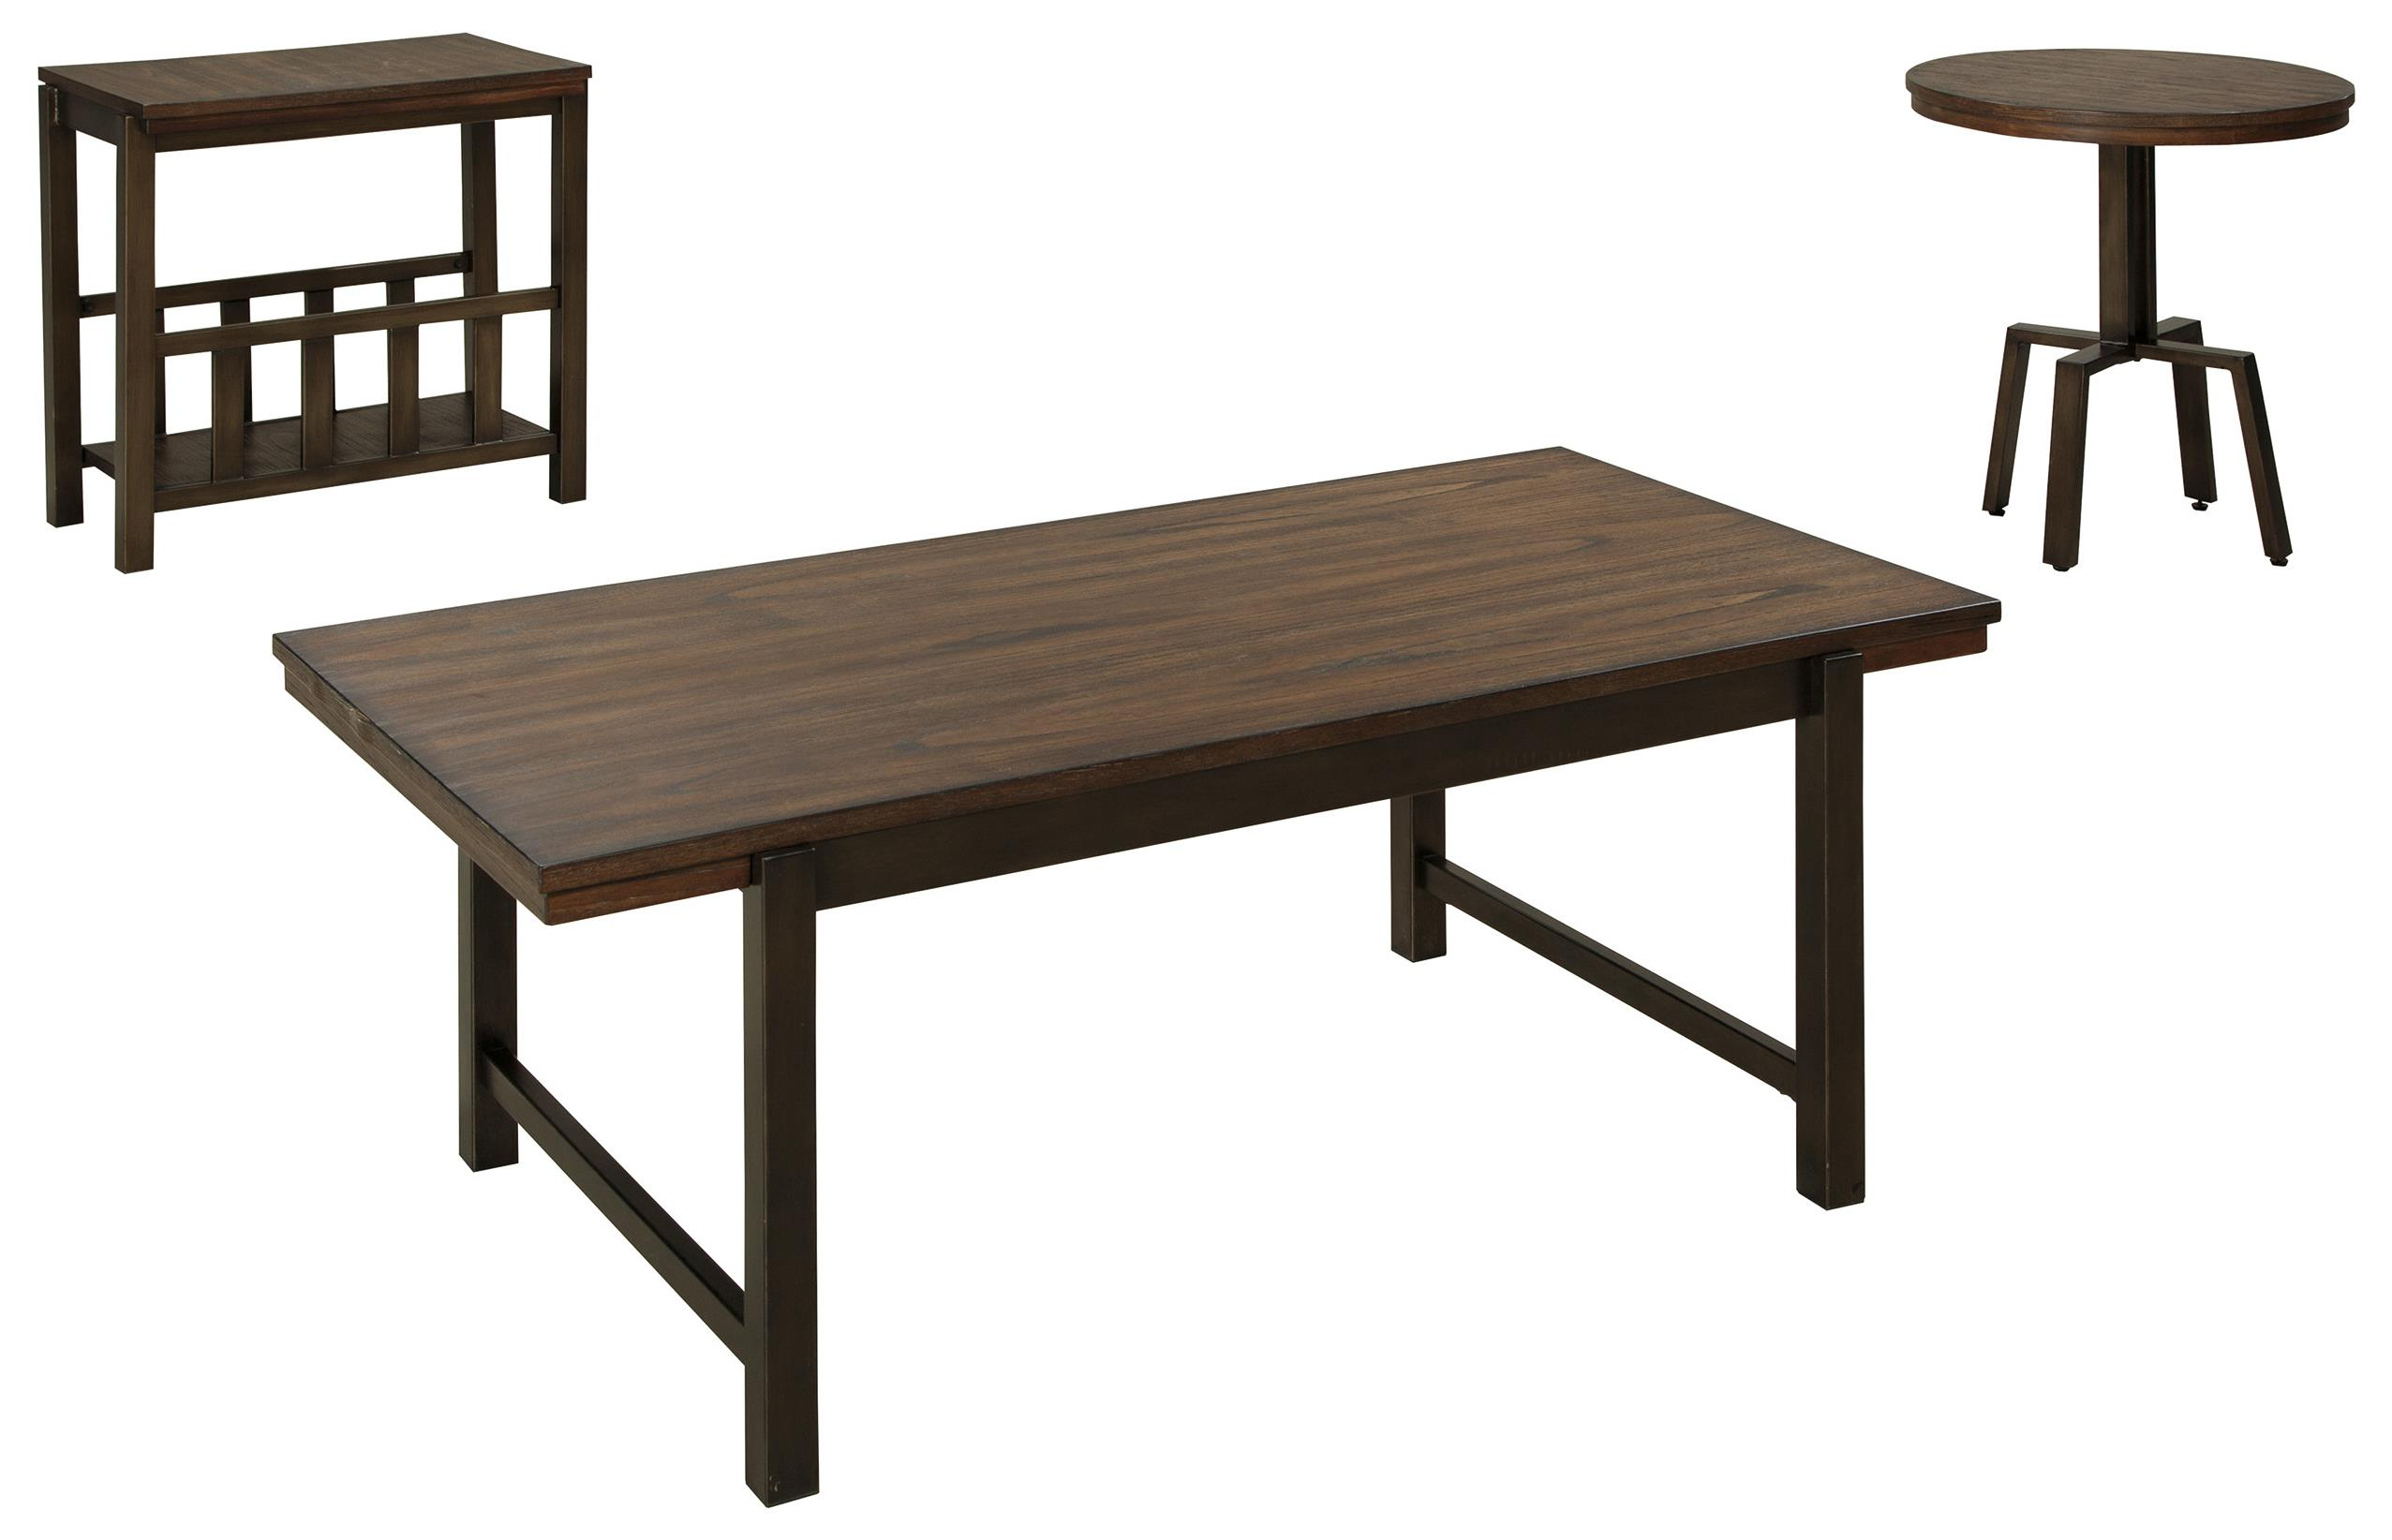 Signature Design by Ashley Riggerton Occasional Table Set - Item Number: T212-13